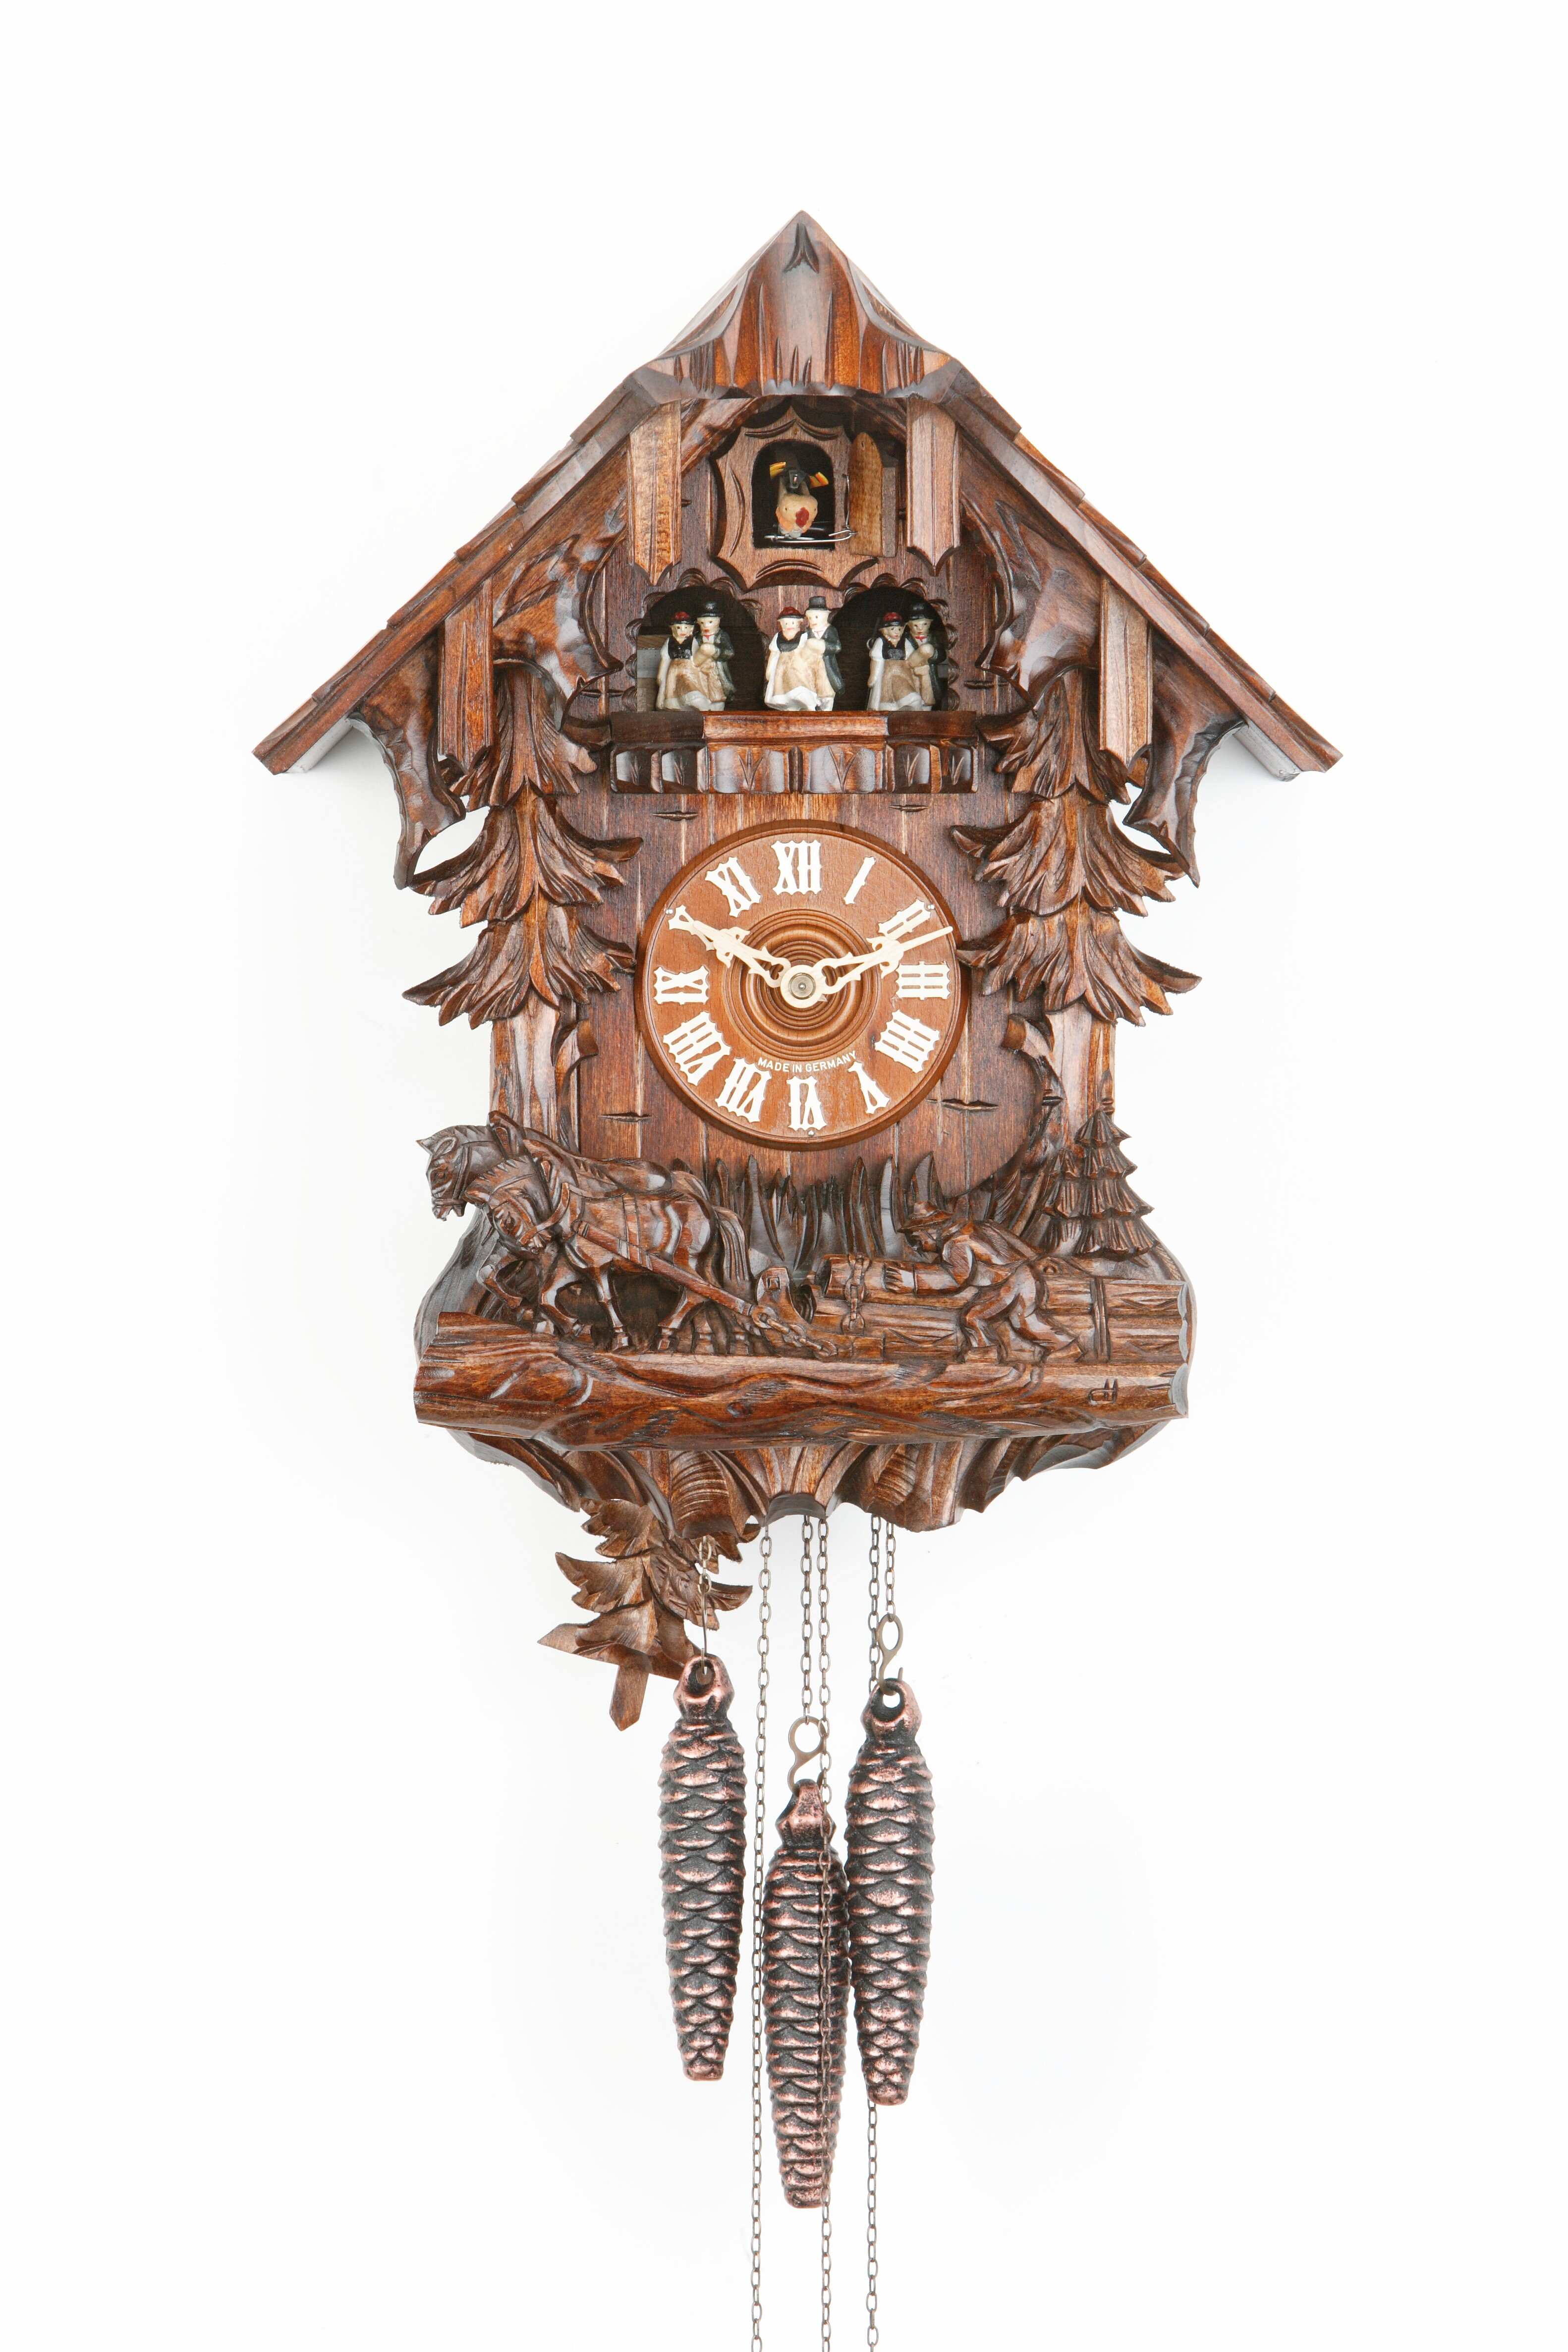 1 Day Music Dancer Cuckoo Clock Black Forest House with farmer and working horses